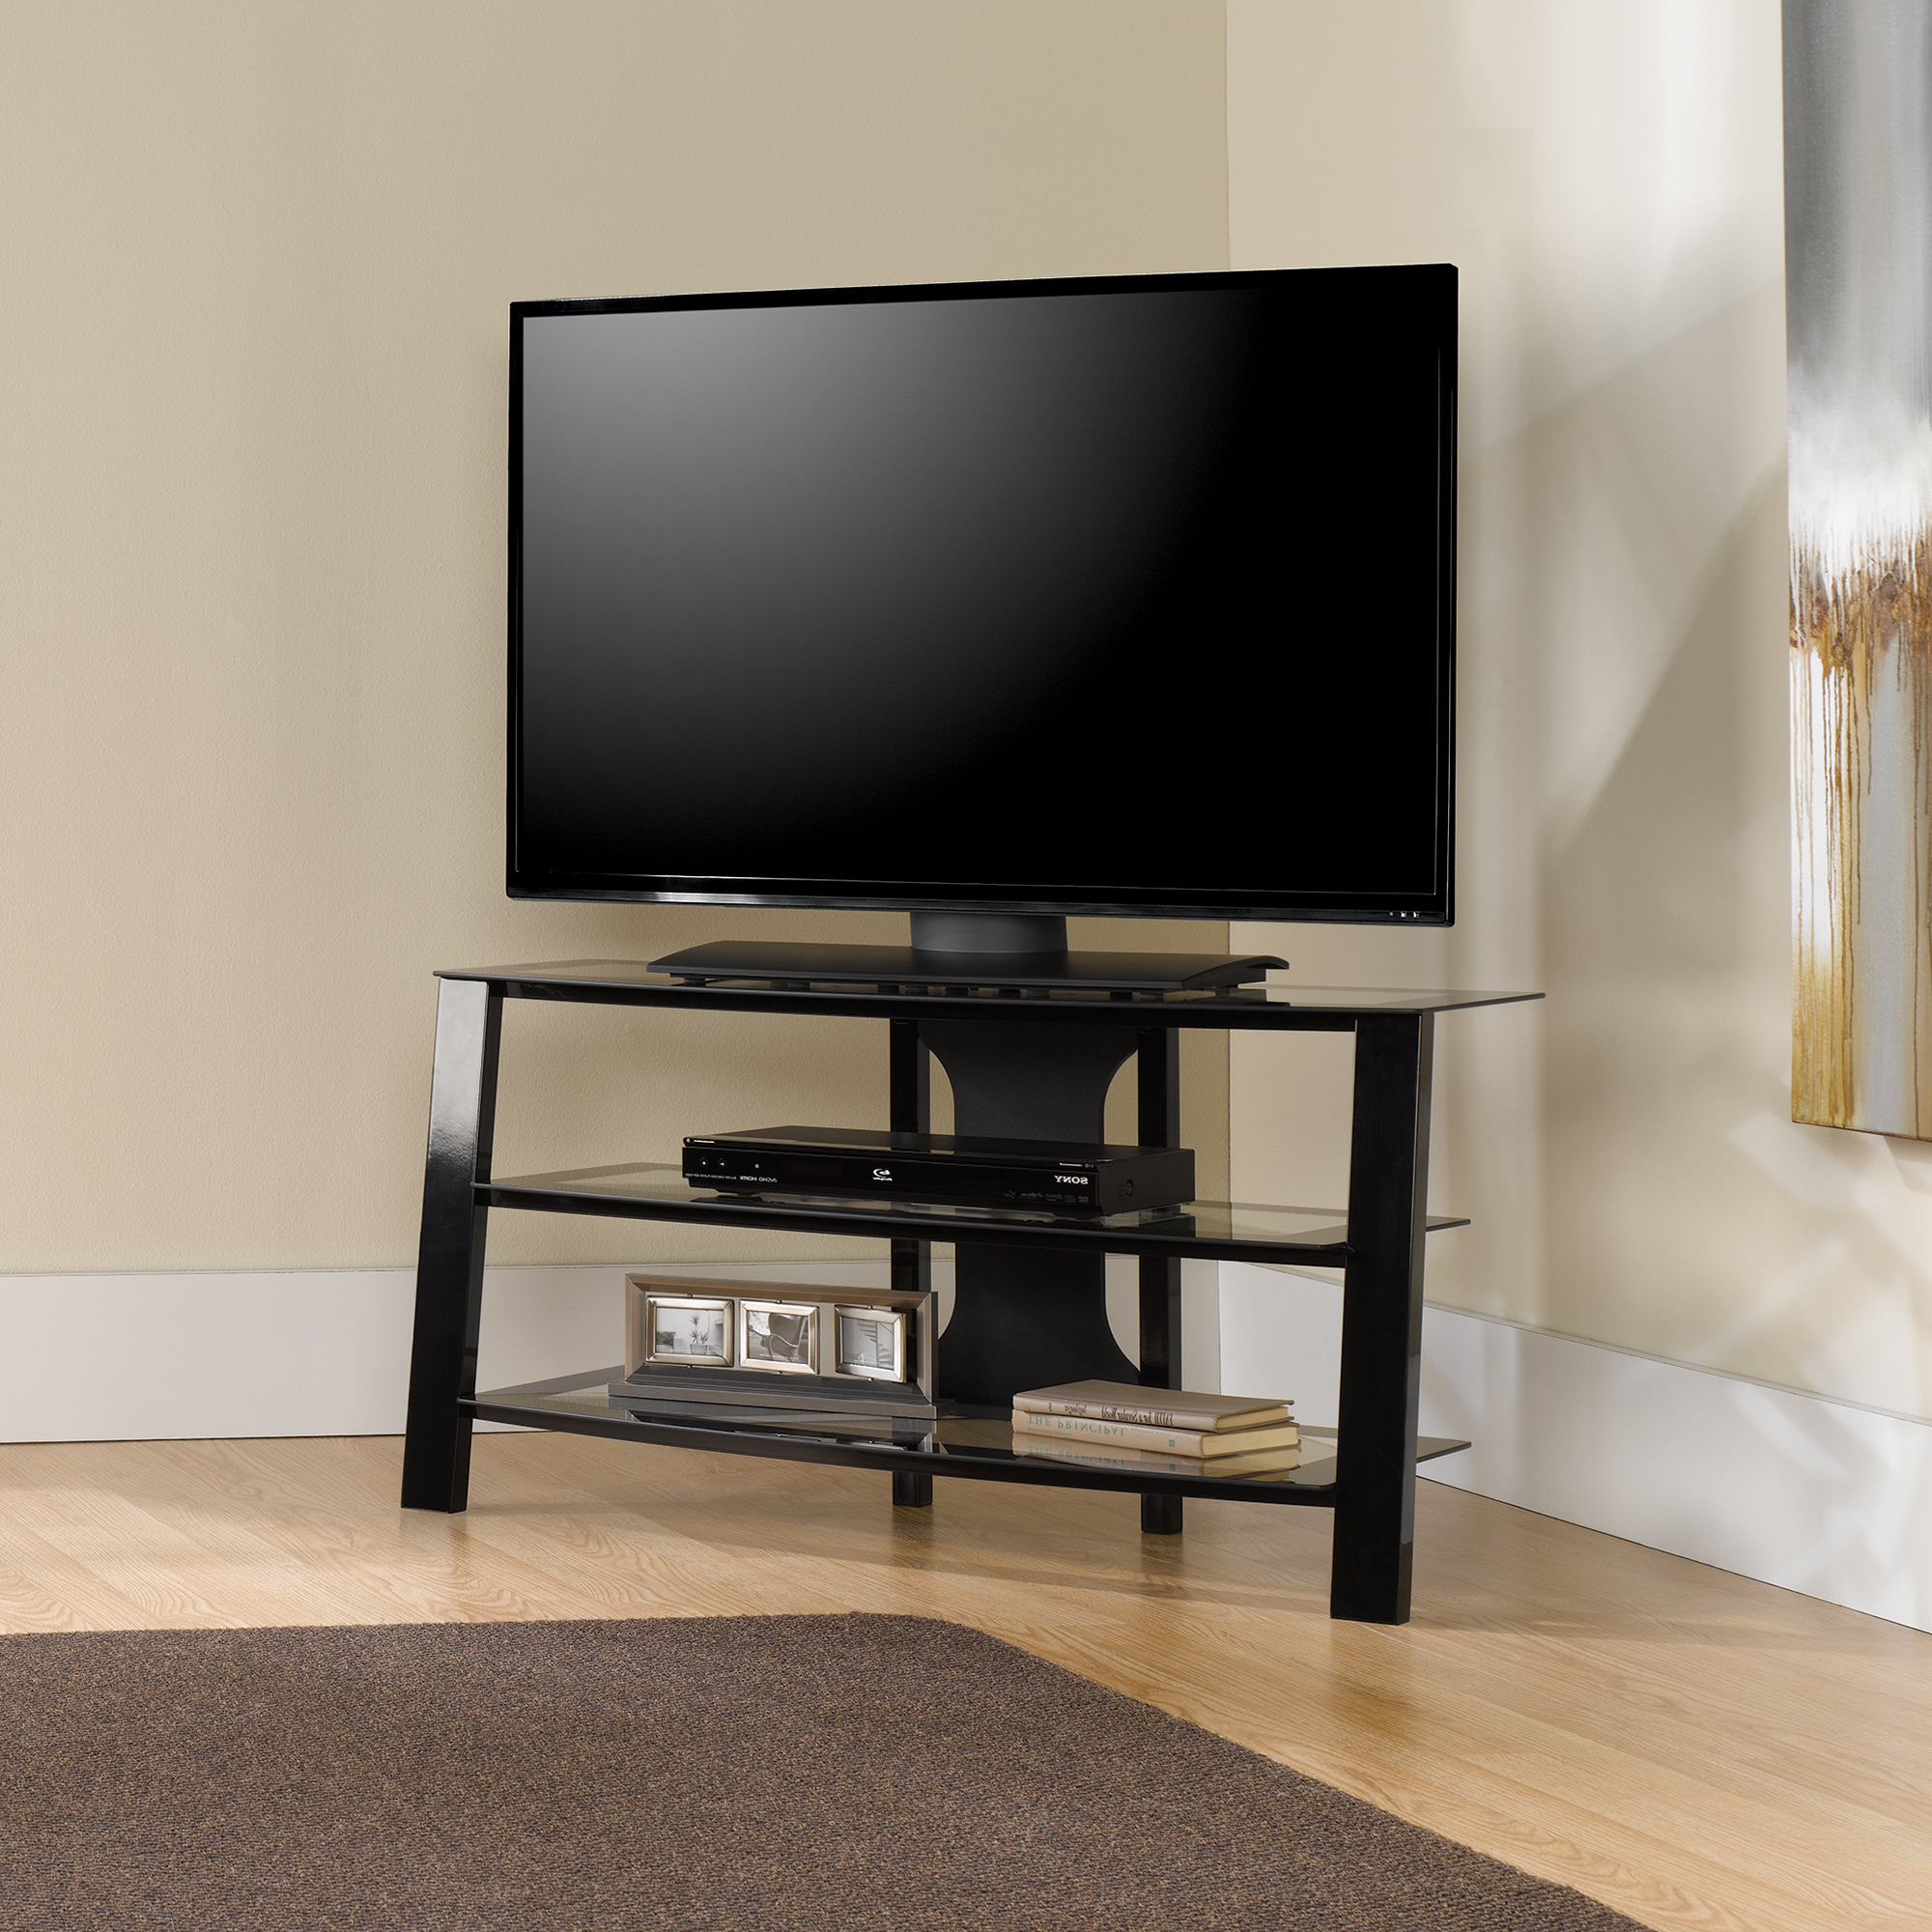 Newest Contemporary Tv Stands For Flat Screens Throughout Flat Panel Tv Stand With Mount Wall Cabinets Portable Stands For (View 14 of 20)